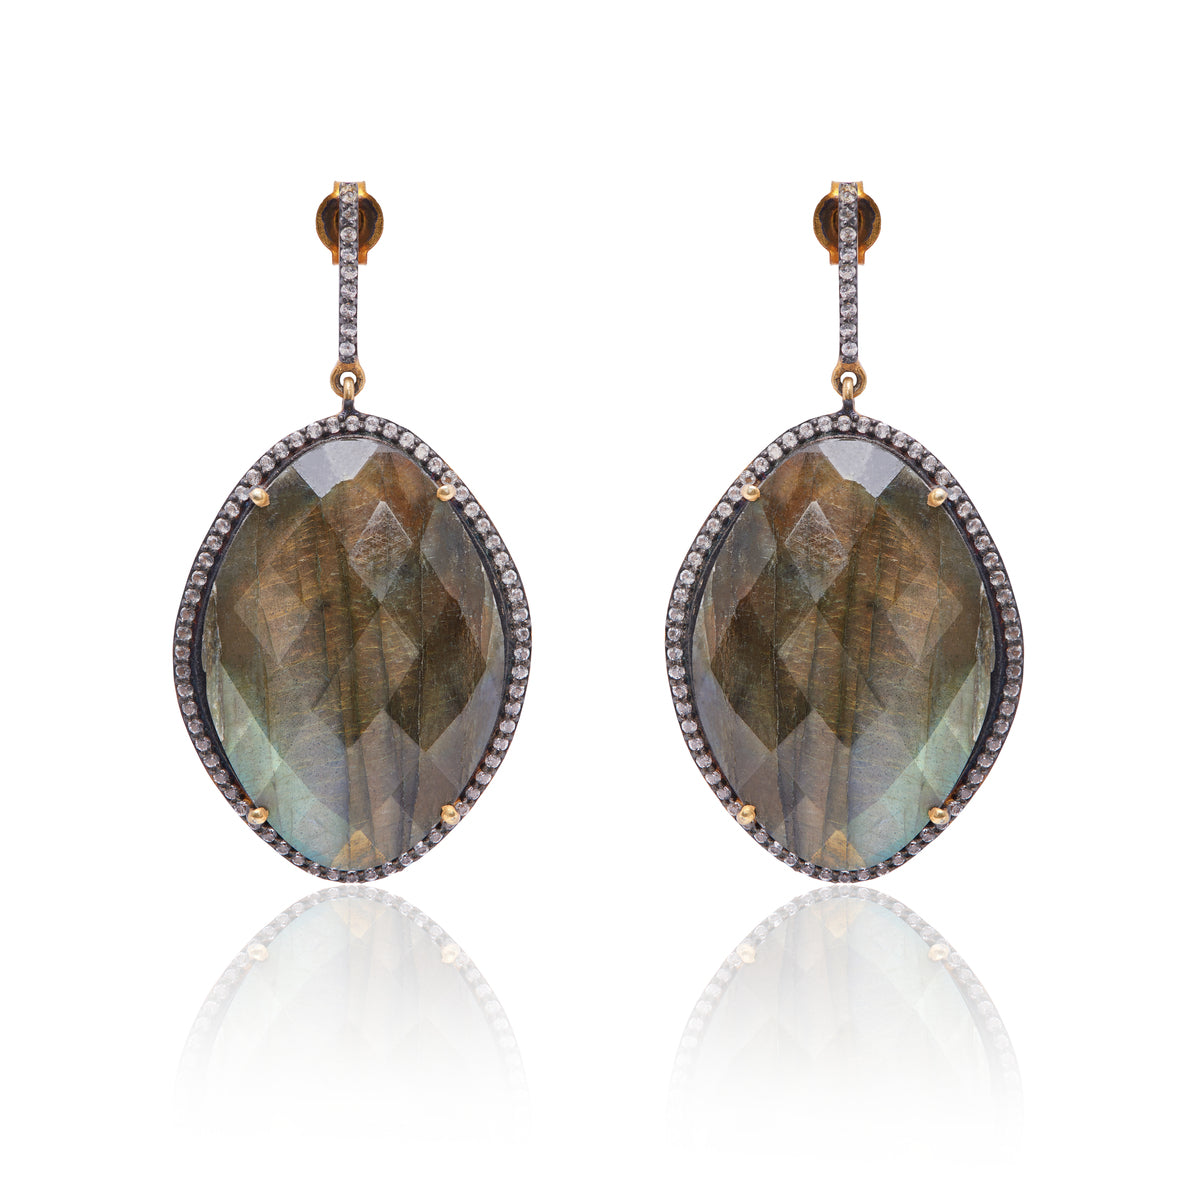 Faceted Labradorite Earring with White Topaz made in sterling silver